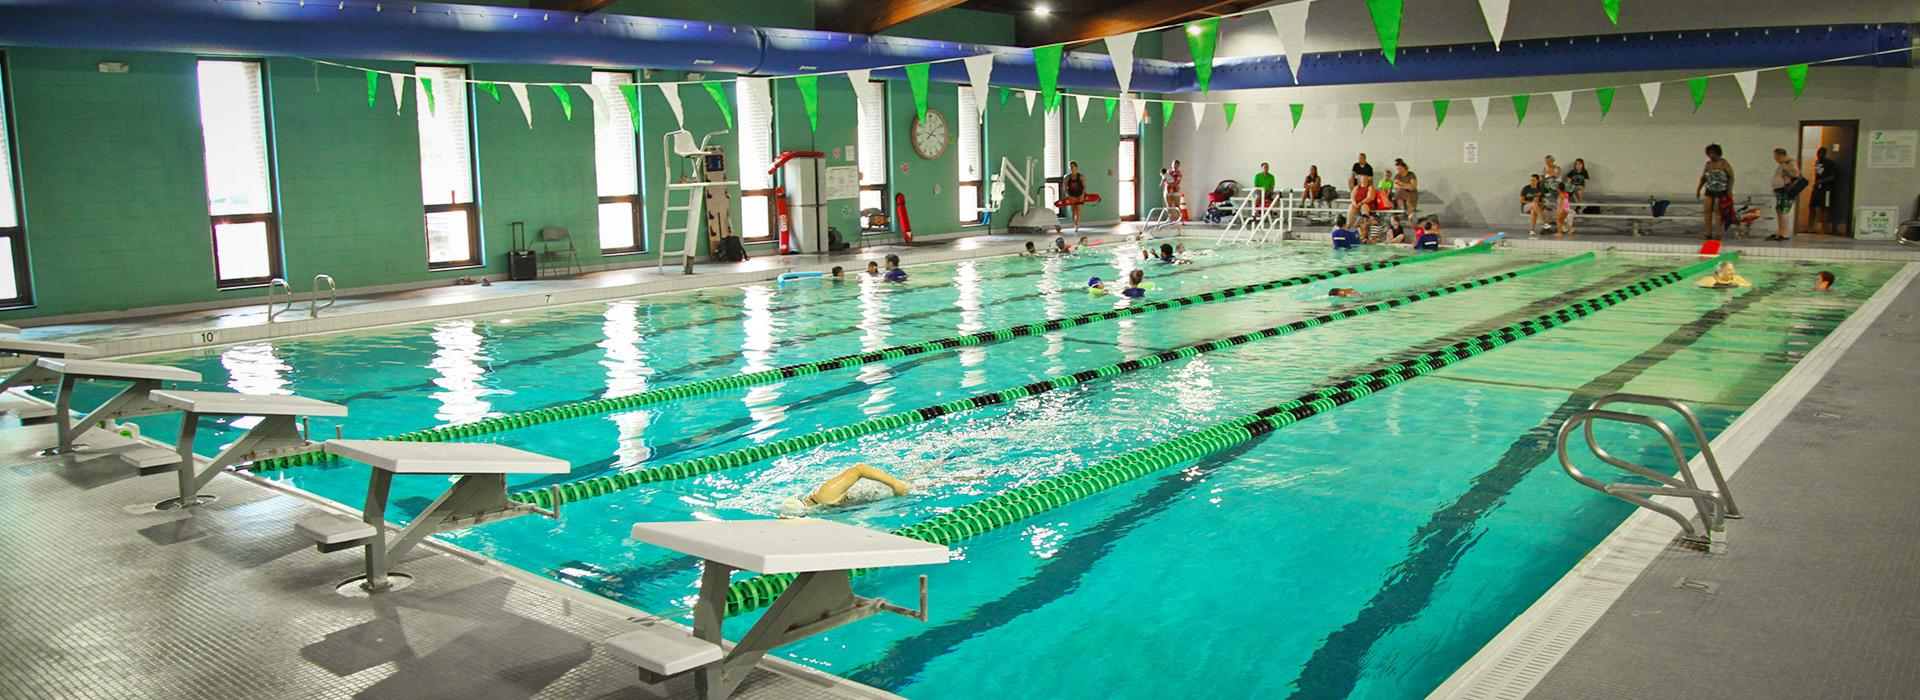 Greenbrier Family YMCA indoor pool